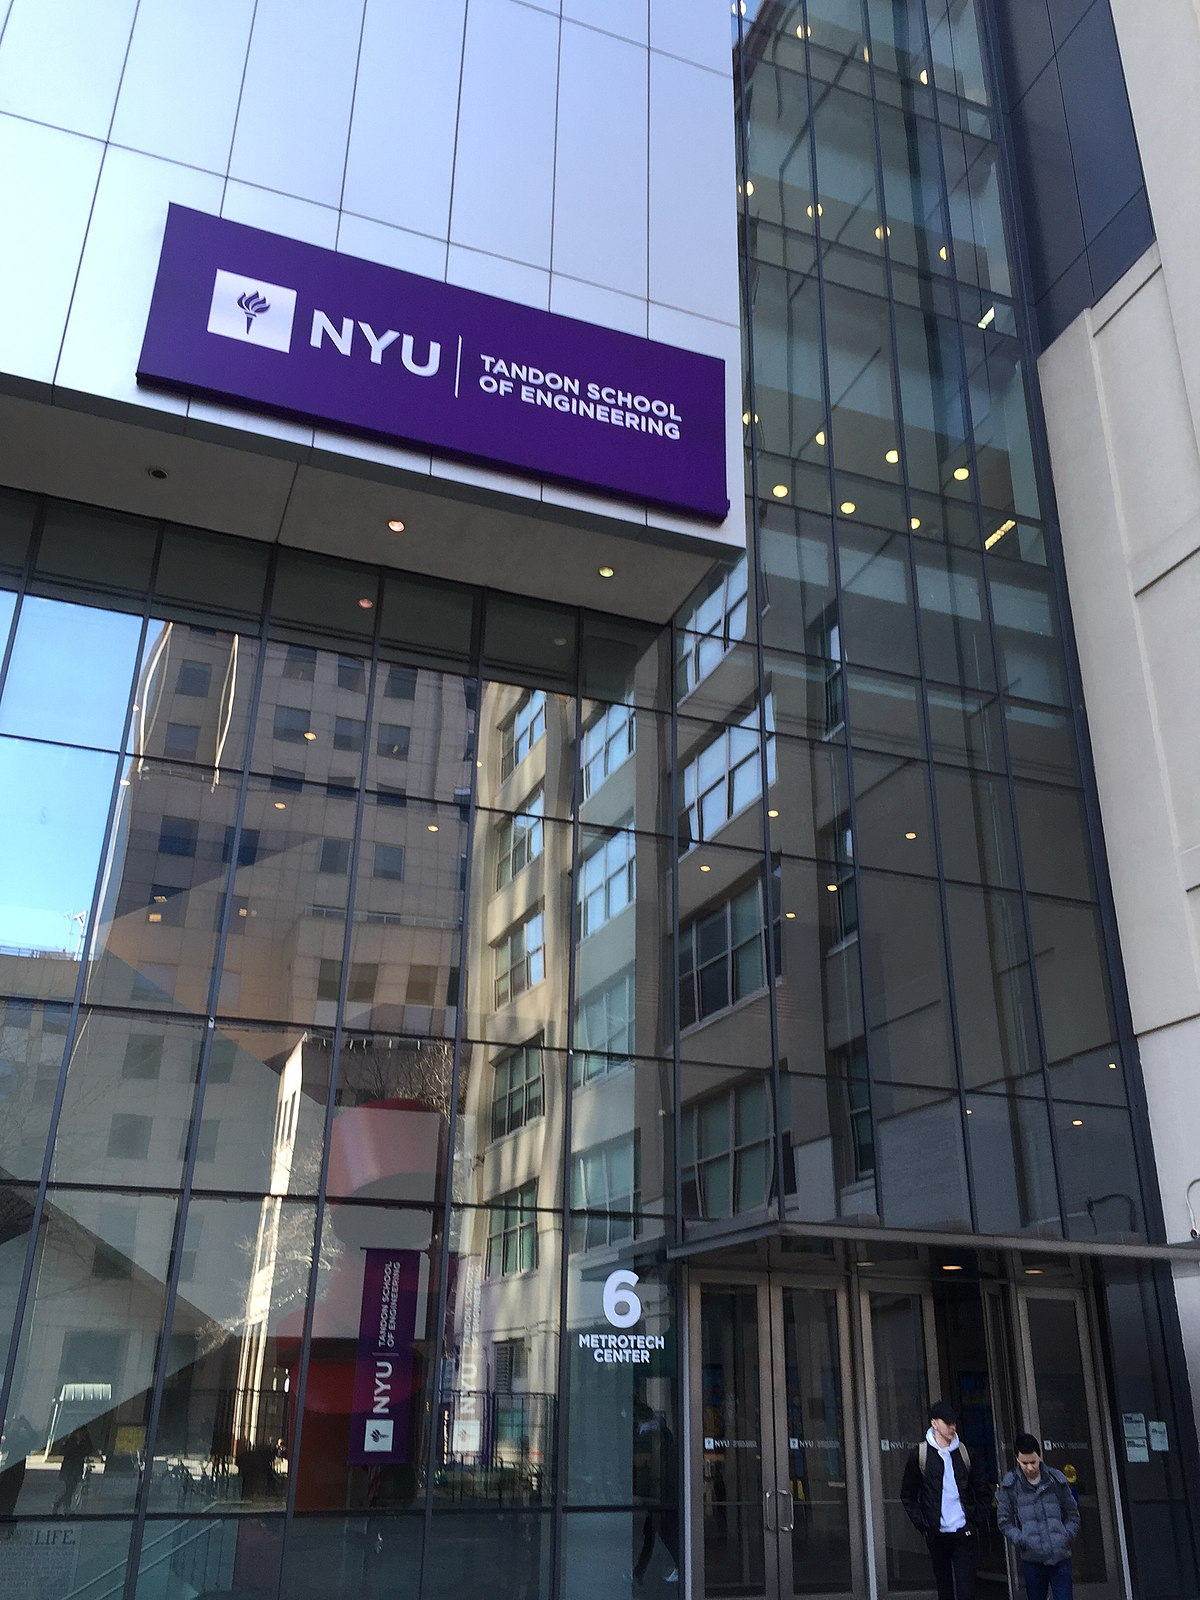 New York University Tandon School of Engineering - Wikipedia